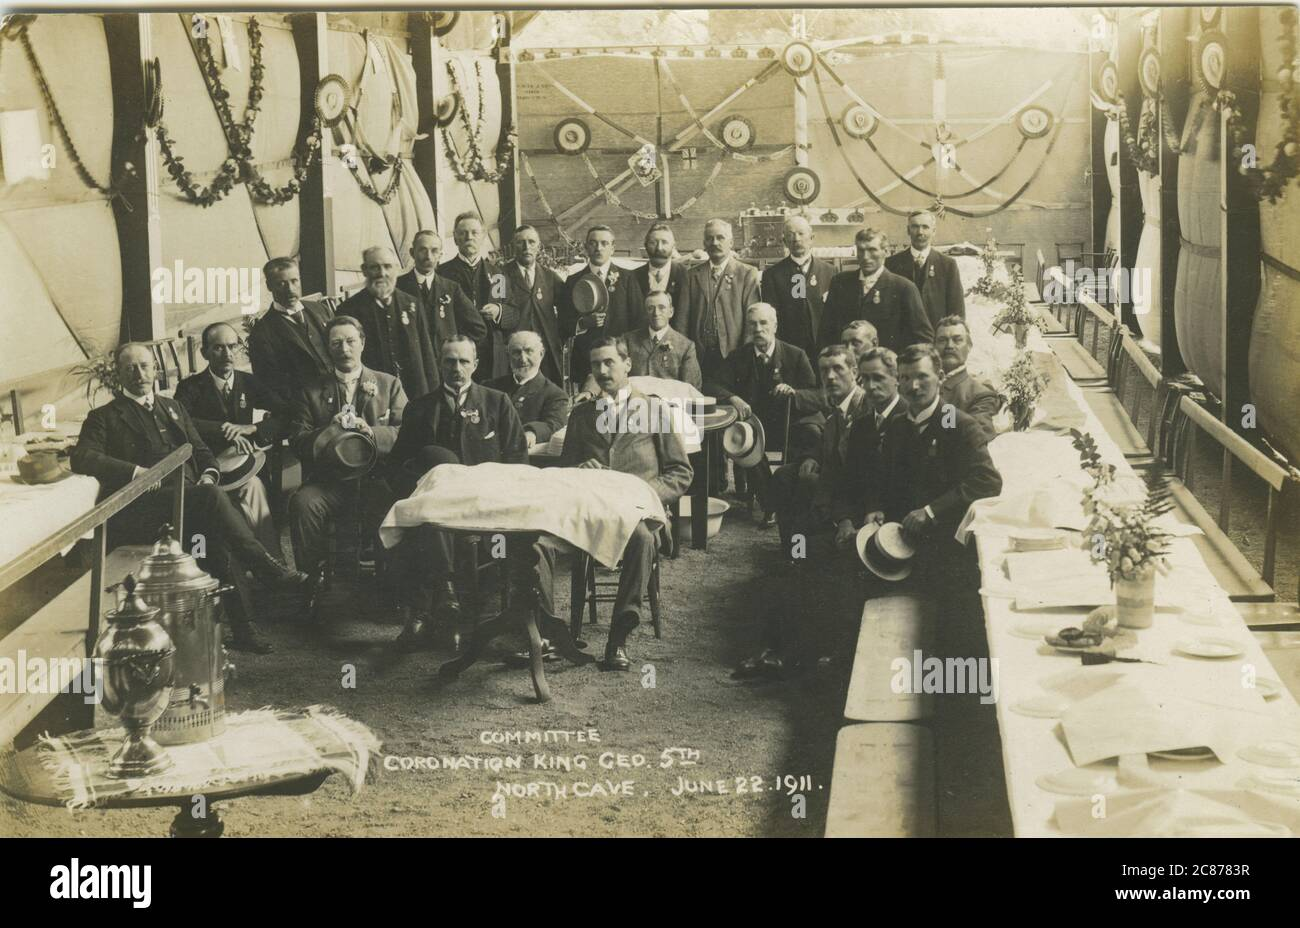 Village Committee (Celebrating the Coronation of King George V - June 22nd 1911), North Cave, Brough, Yorkshire, England. Stock Photo